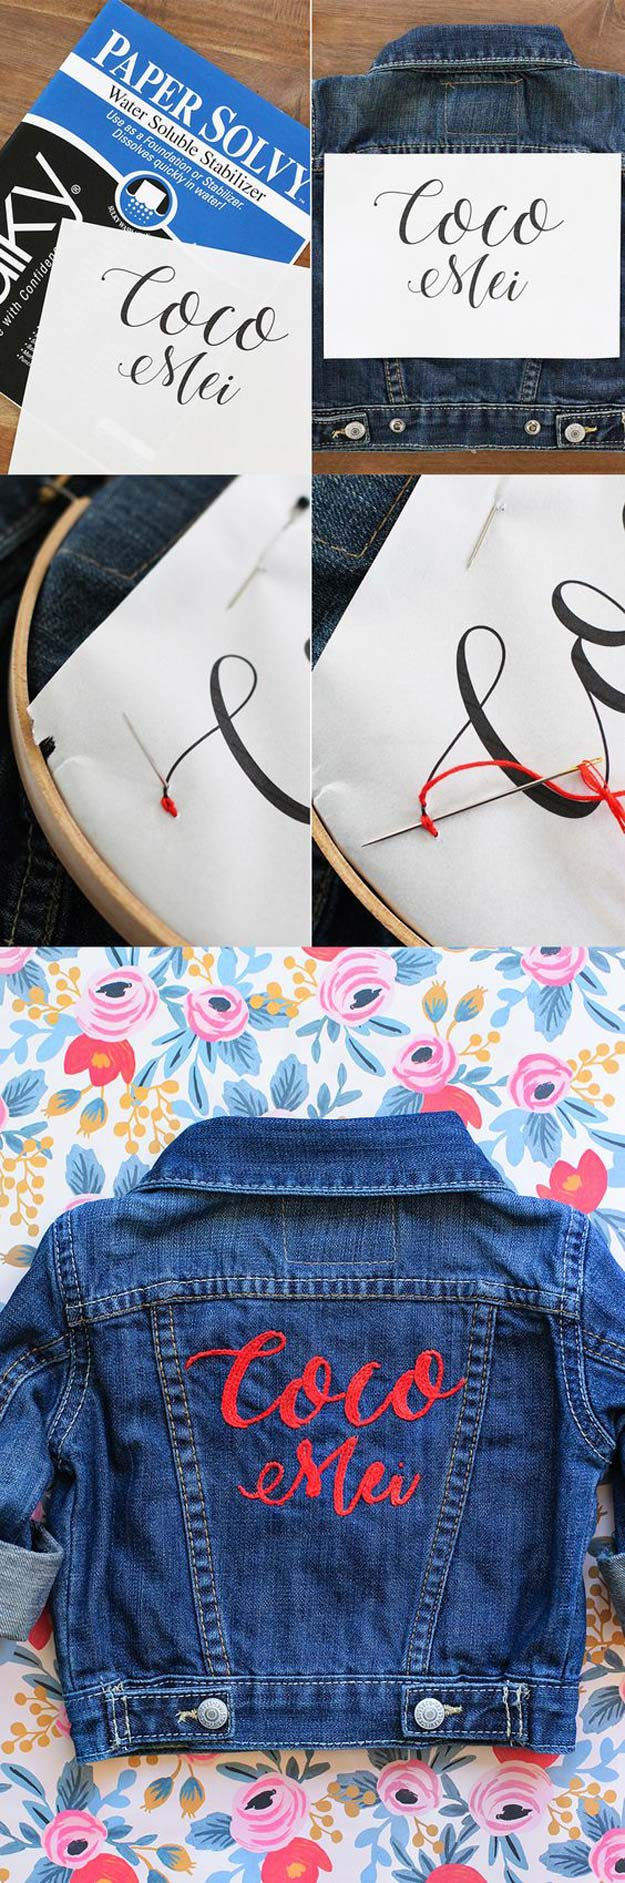 Cool Embroidery Projects for Teens - Step by Step Embroidery Tutorials - Cool Embroidery Projects for Teens - Step by Step Embroidery Tutorials - project name here - Awesome Embroidery Projects for Teenagers - Cool Embroidery Crafts for Girls - Creative Embroidery Designs - Best Embroidery Wall Art, Room Decor - Great Embroidery Gifts, Free Embroidery Patterns for Girls, Women and Tweens http://diyprojectsforteens.com/cool-embroidery-projects-teens - Awesome Embroidery Projects for Teenagers - Cool Embroidery Crafts for Girls - Creative Embroidery Designs - Best Embroidery Wall Art, Room Decor - Great Embroidery Gifts, Free Embroidery Patterns for Girls, Women and Tweens http://diyprojectsforteens.com/cool-embroidery-projects-teens